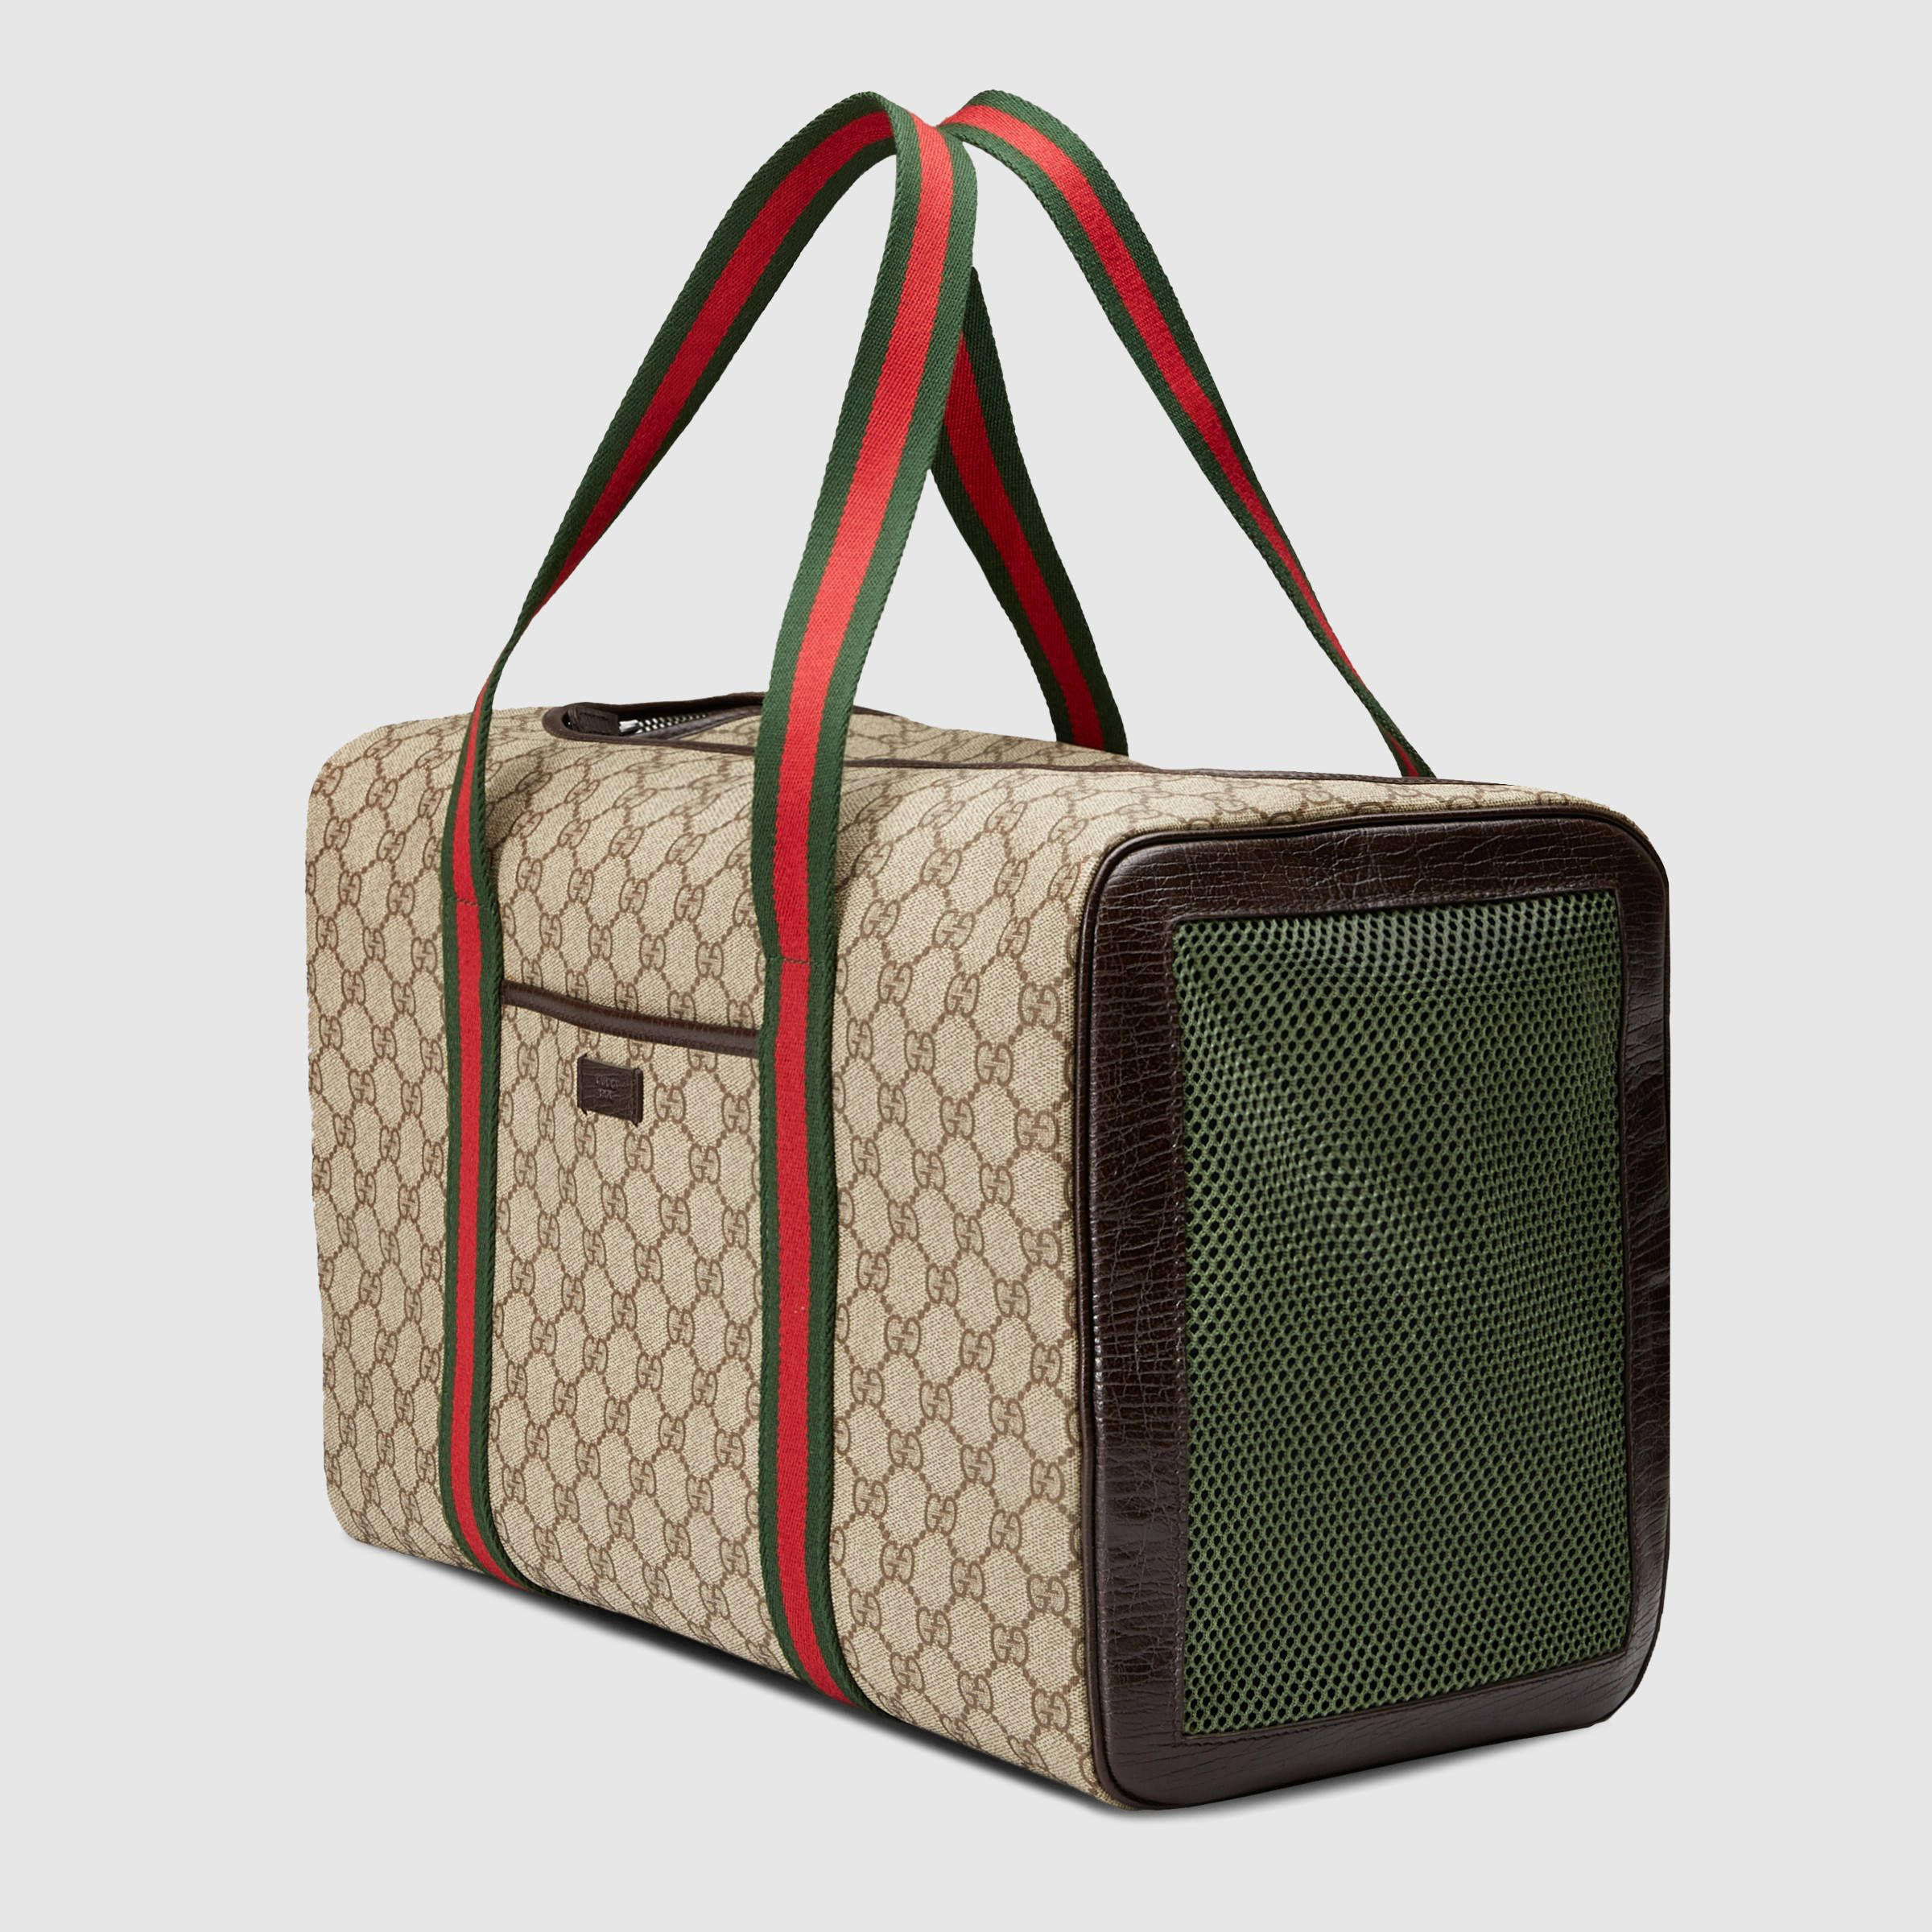 Gucci Dog Carrier For Sale